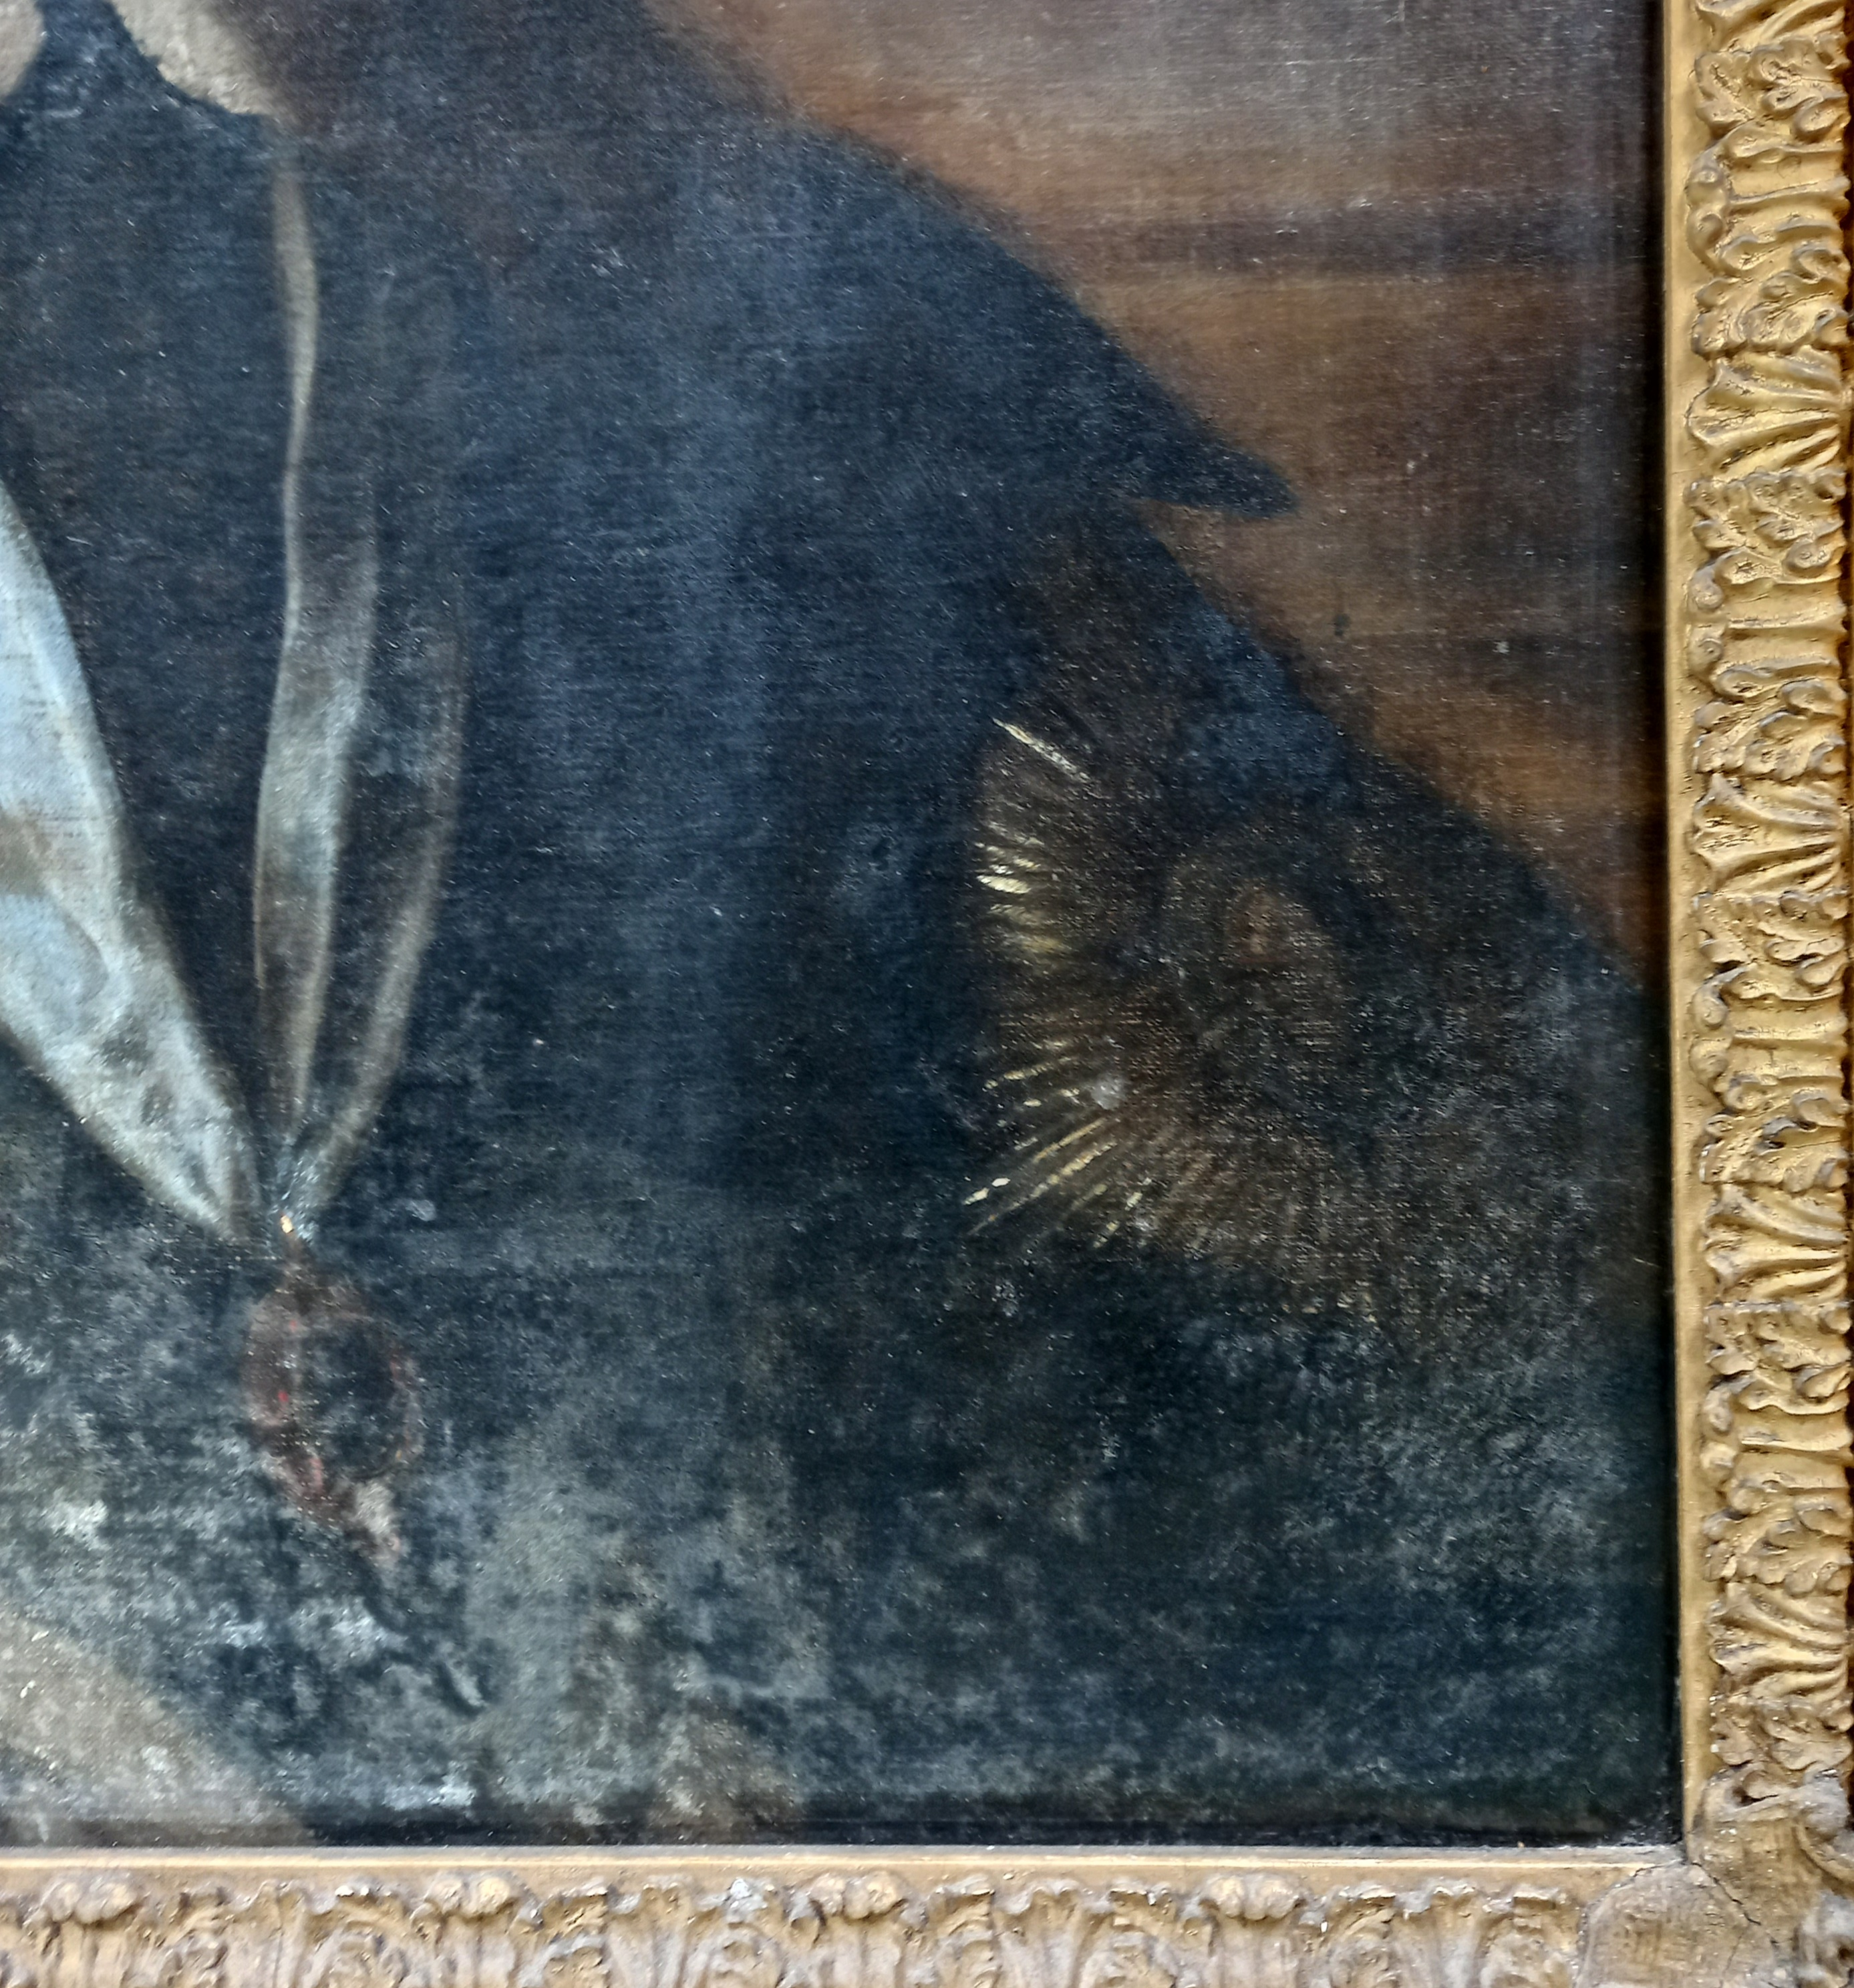 Follower of Sir Antony Van Dyck (1599-1641), Portrait of Charles I, Head and shoulders, with lace - Image 13 of 22